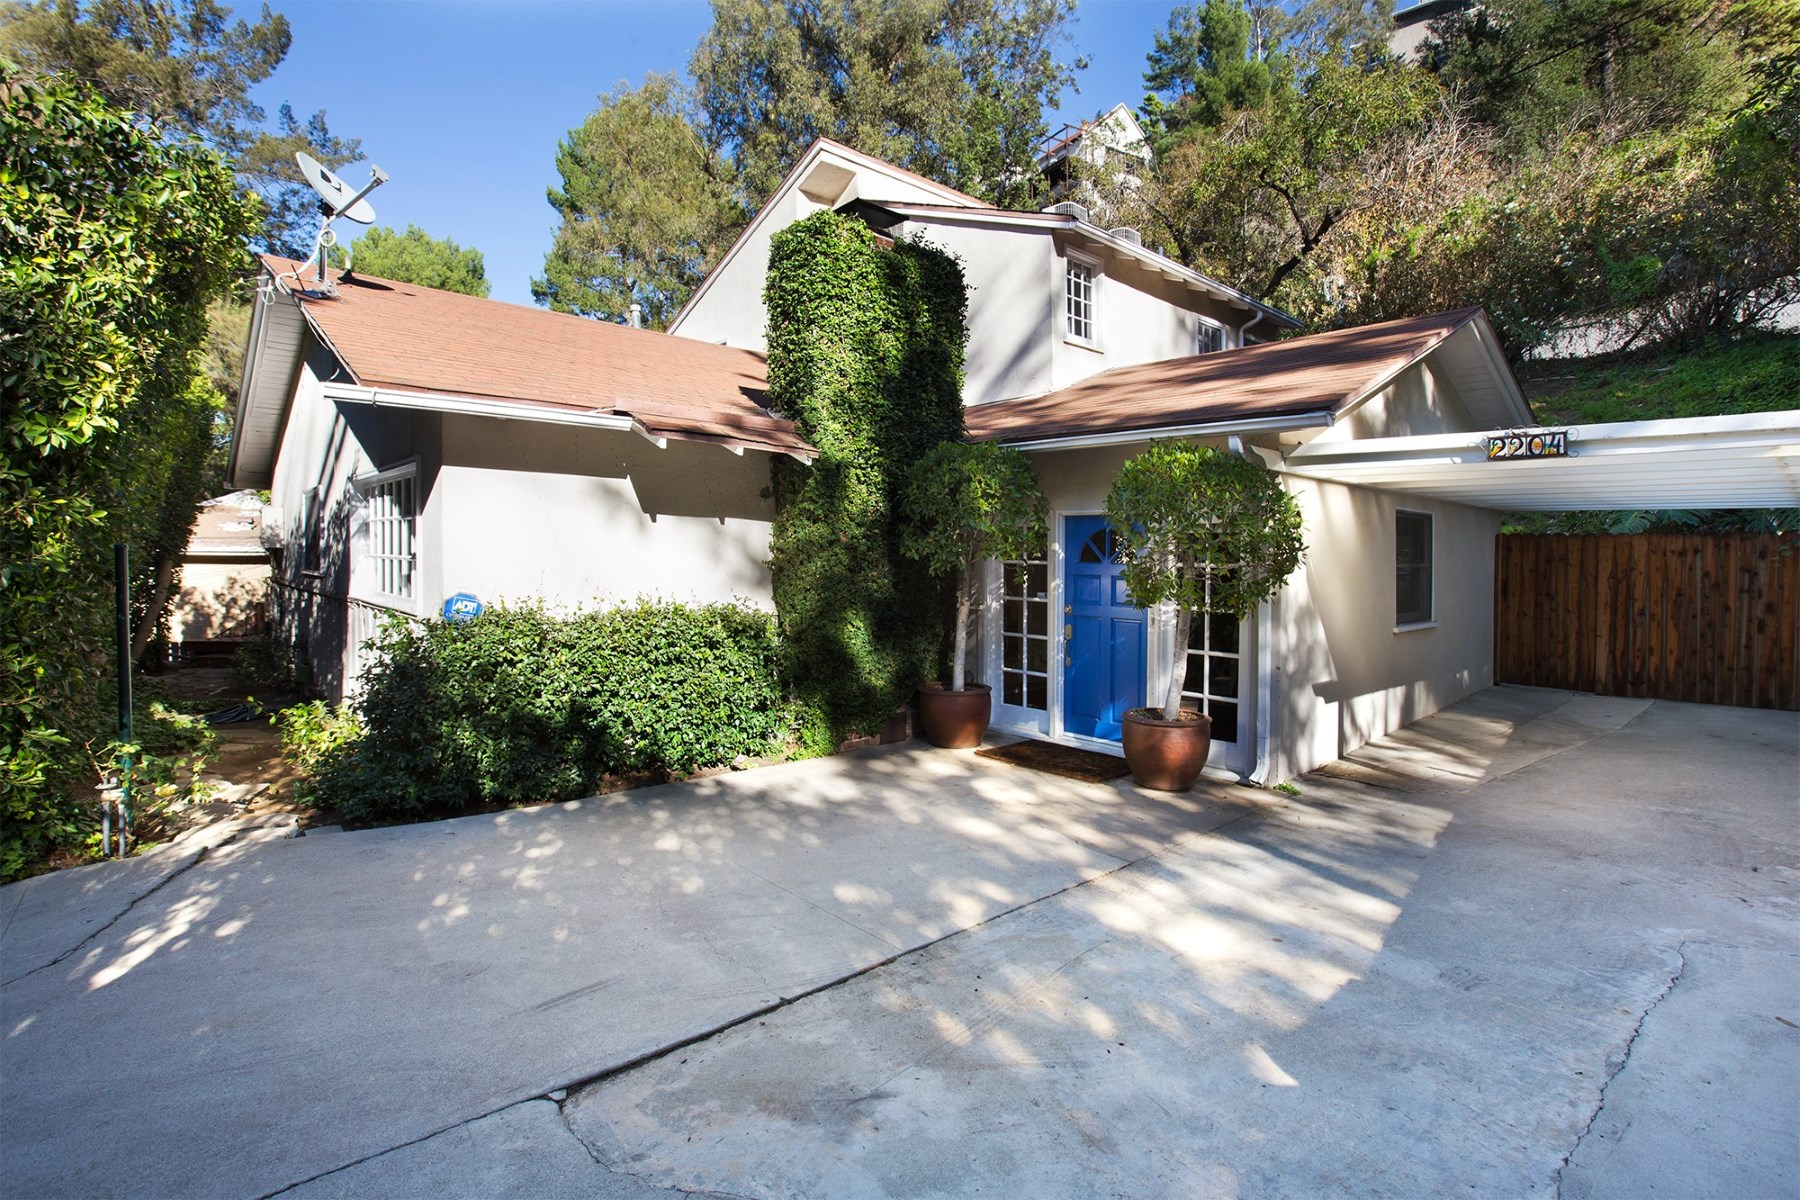 獨棟家庭住宅 為 出售 在 Vintage Elegance in Laurel Canyon 2204 Stanley Hills Drive Hollywood Hills, Los Angeles, 加利福尼亞州 90046 美國